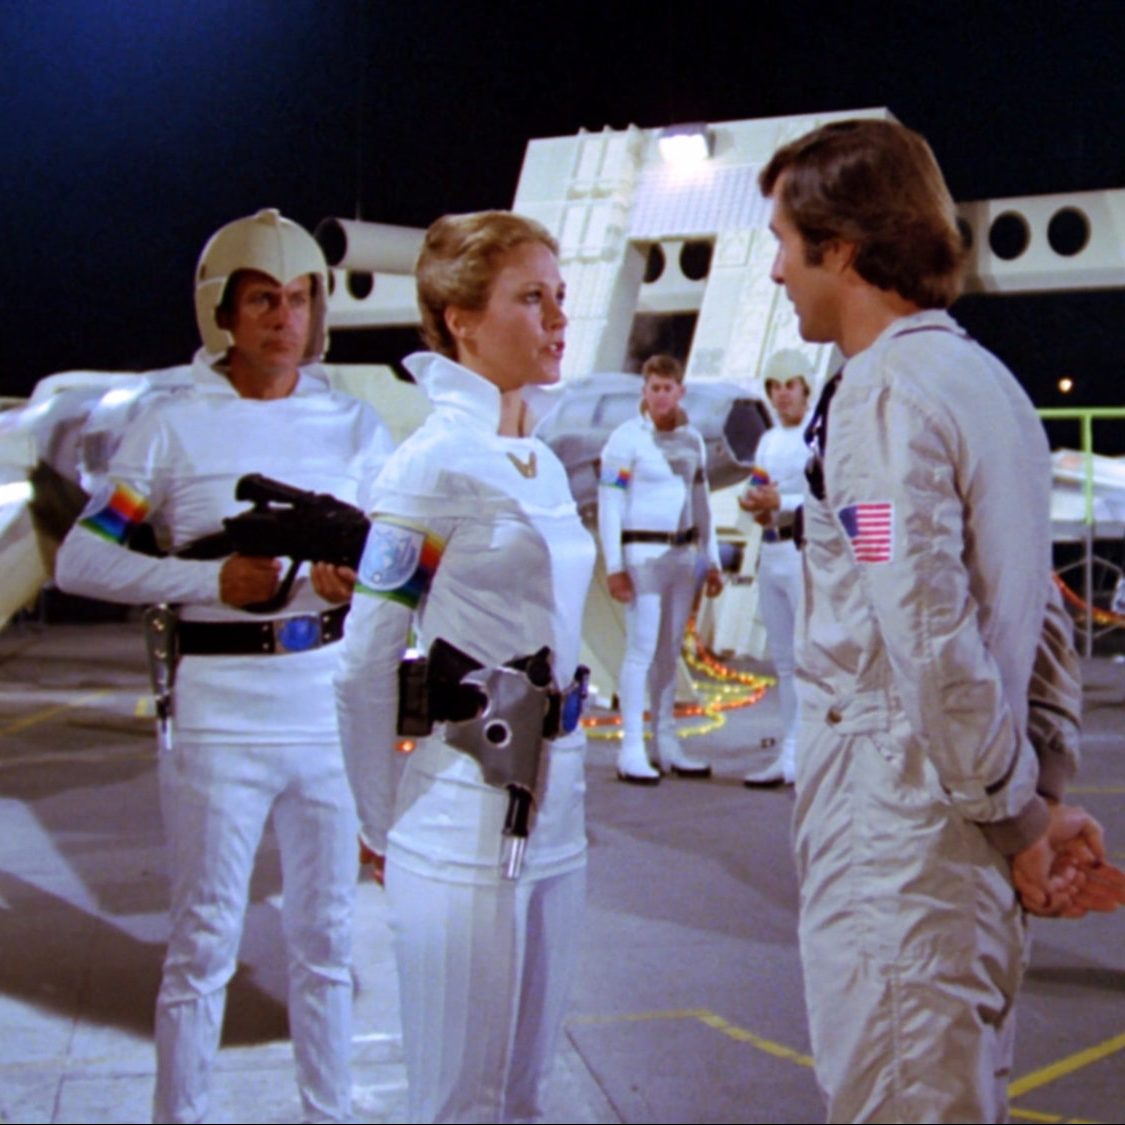 SFS076 BuckRogers 04 e1603101968358 20 Things You Probably Didn't Know About The Original Battlestar Galactica